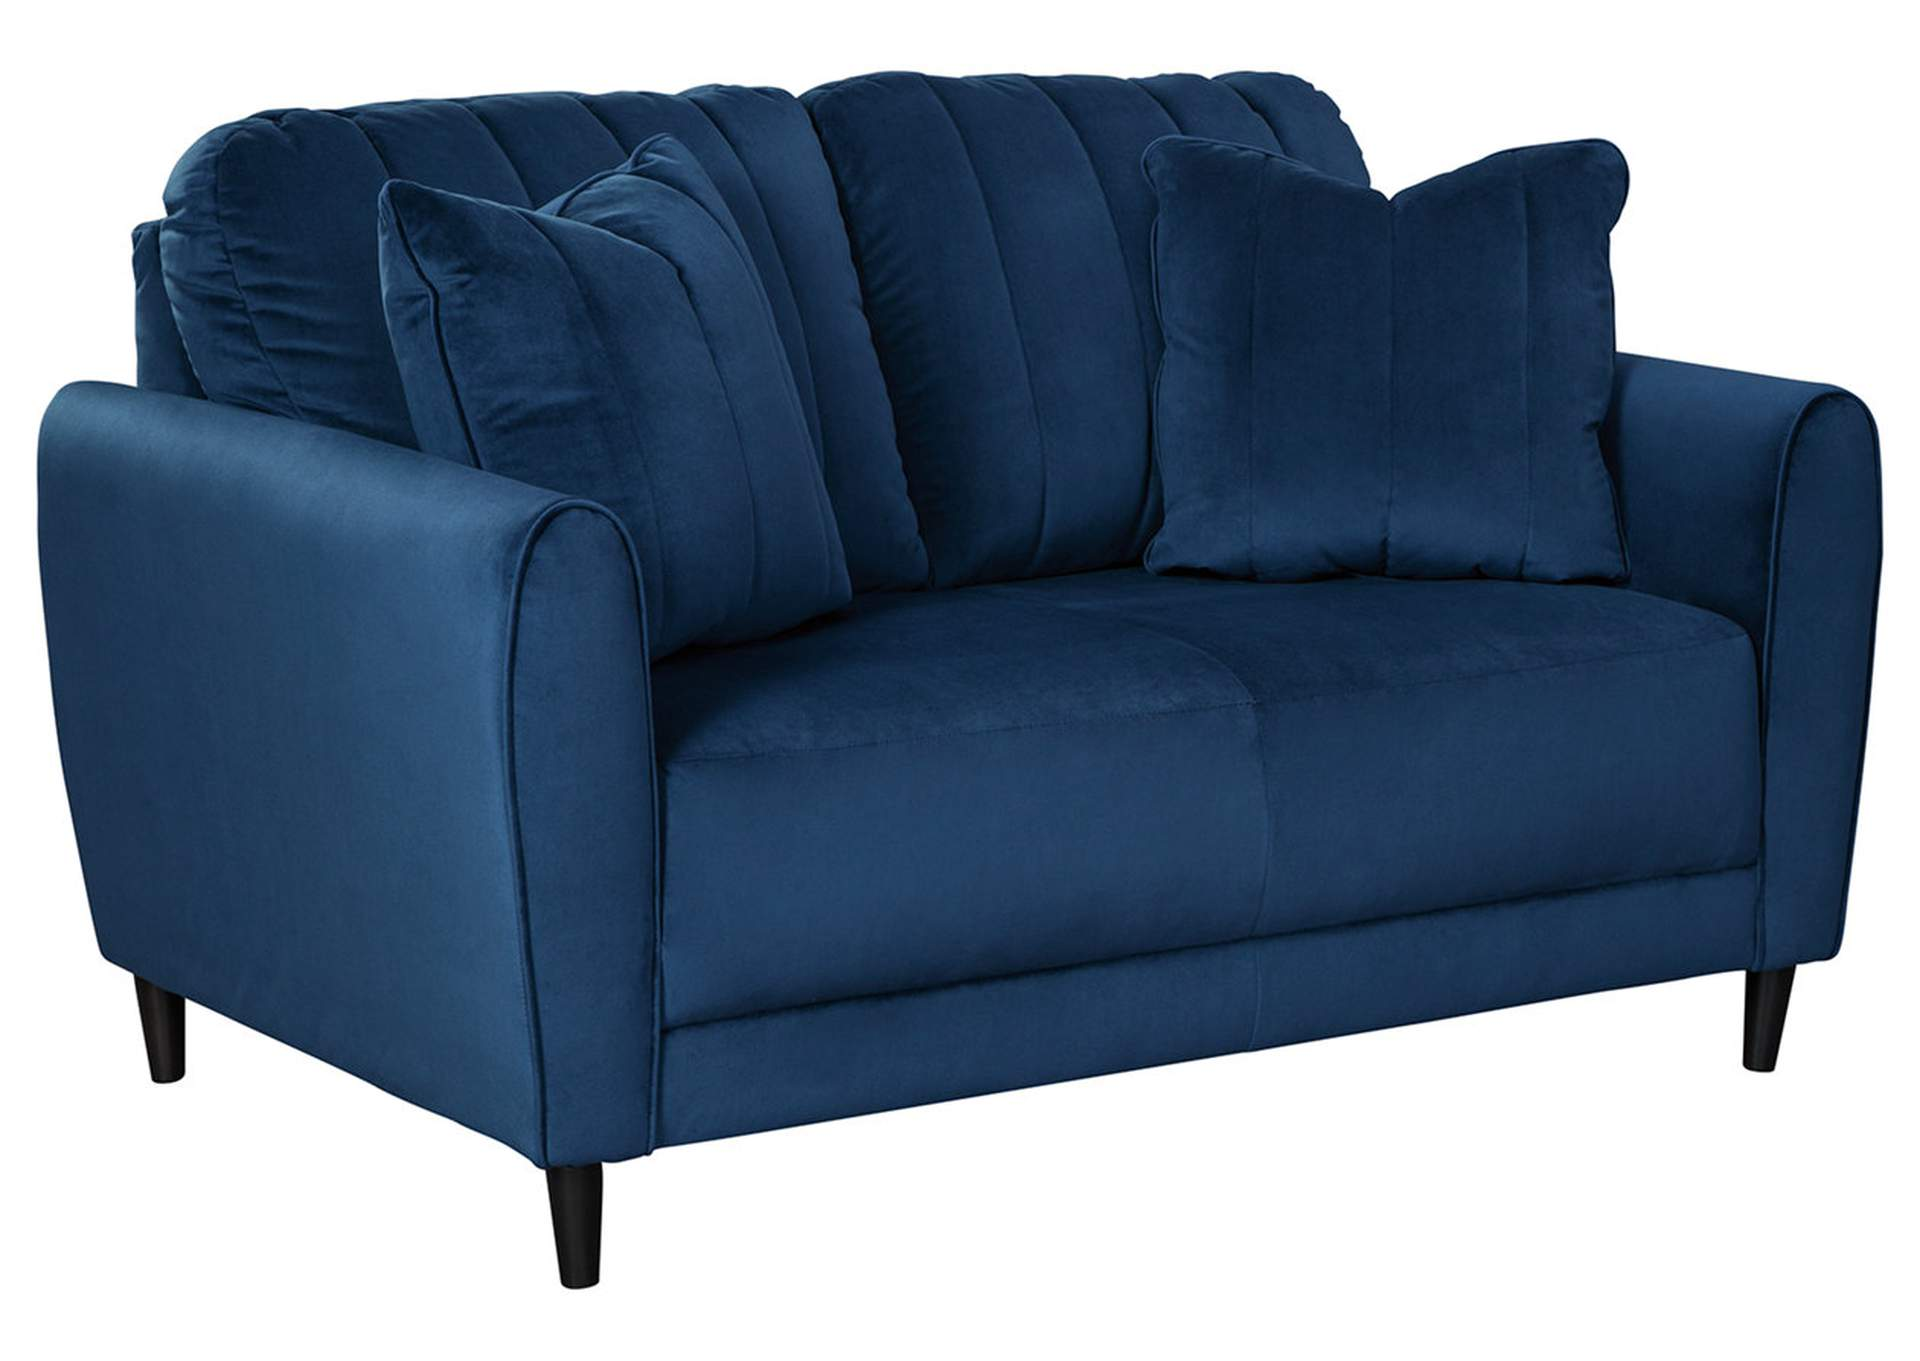 Enderlin Ink Loveseat,Signature Design By Ashley